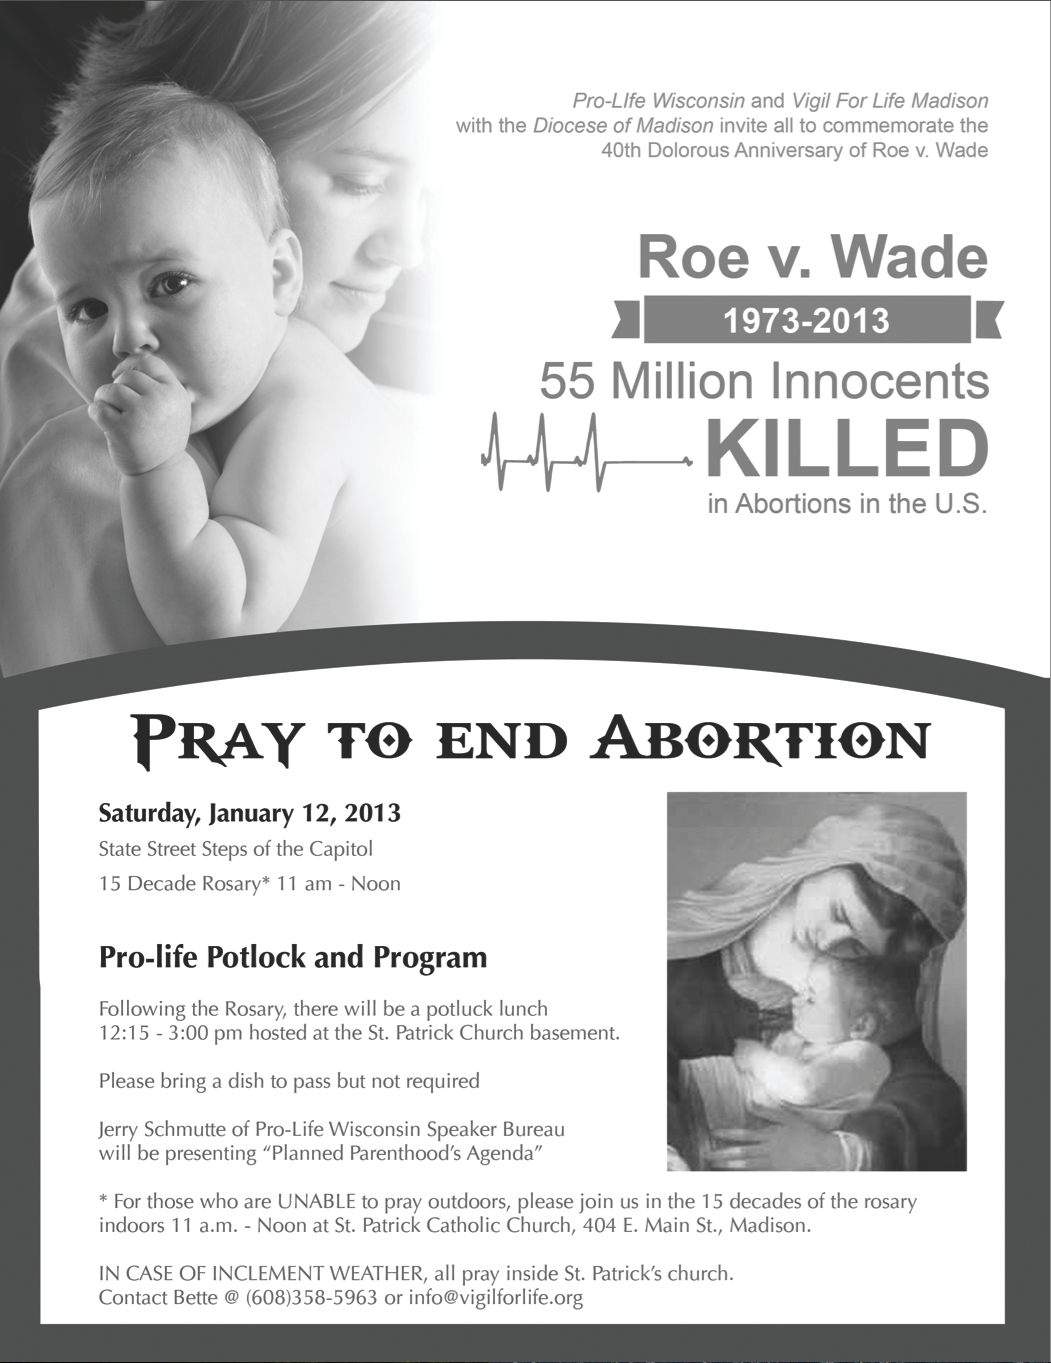 Roe v. Wade Precedents - Sarah Weddington MAKERS Moment